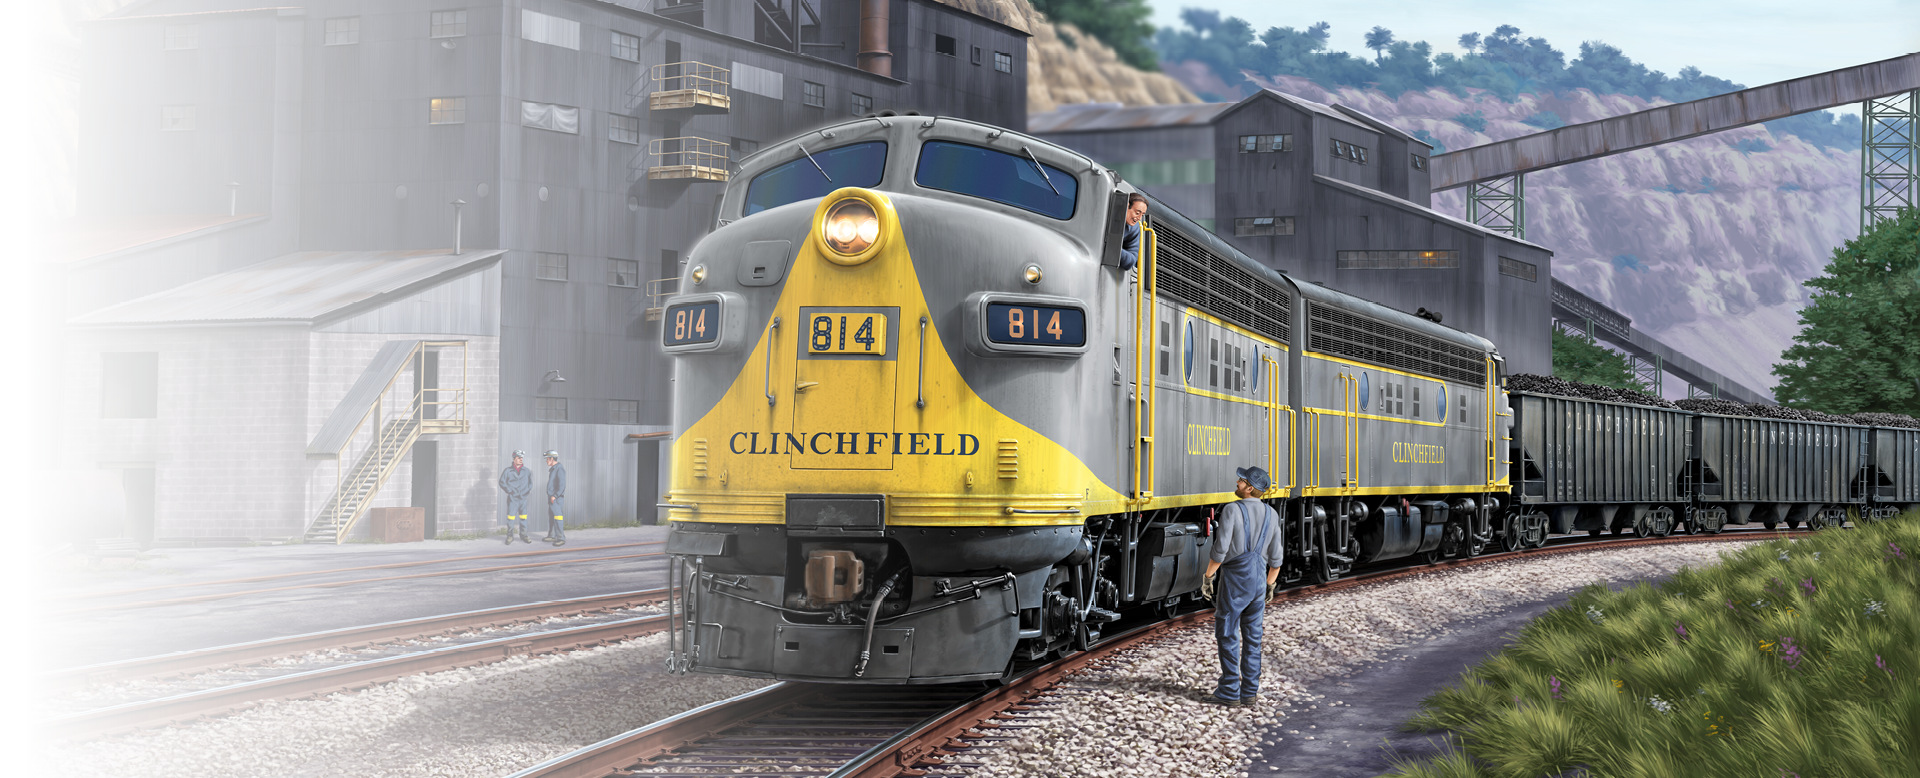 CLINCHFIELD RAILROAD